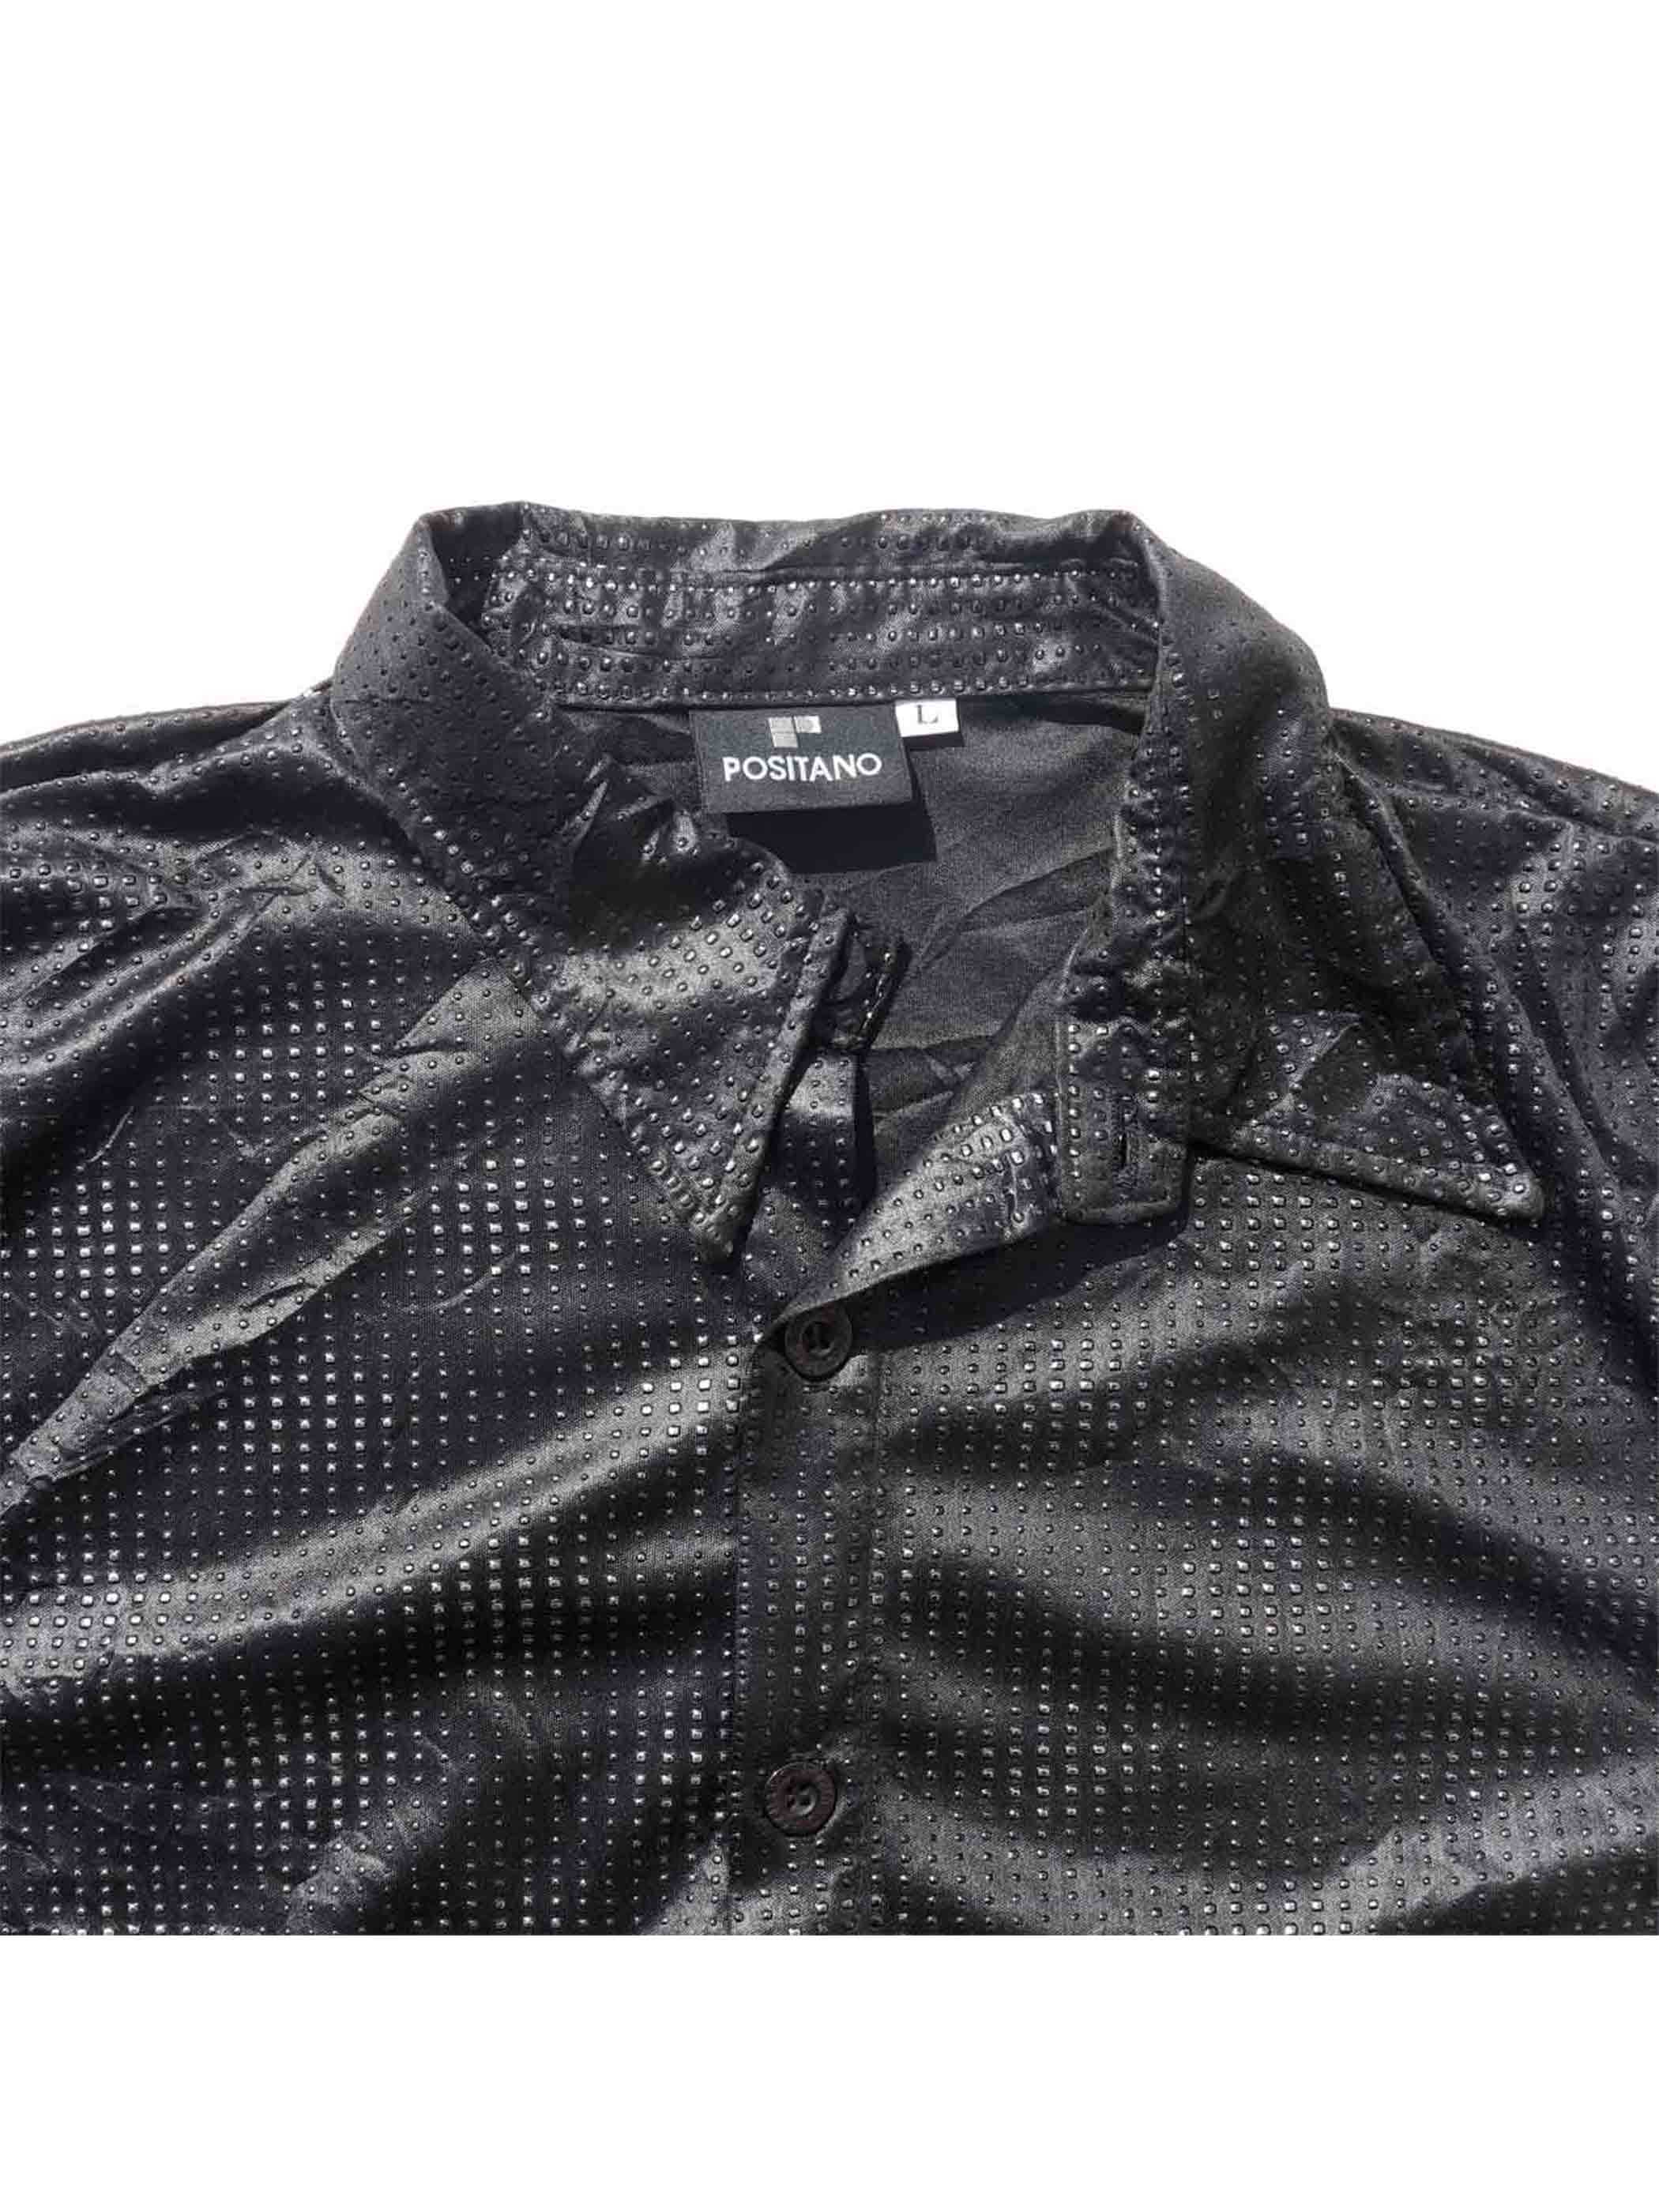 90's POSITANO Halftone Dot Pattern S/S Shirt Made In U.S.A. [L]